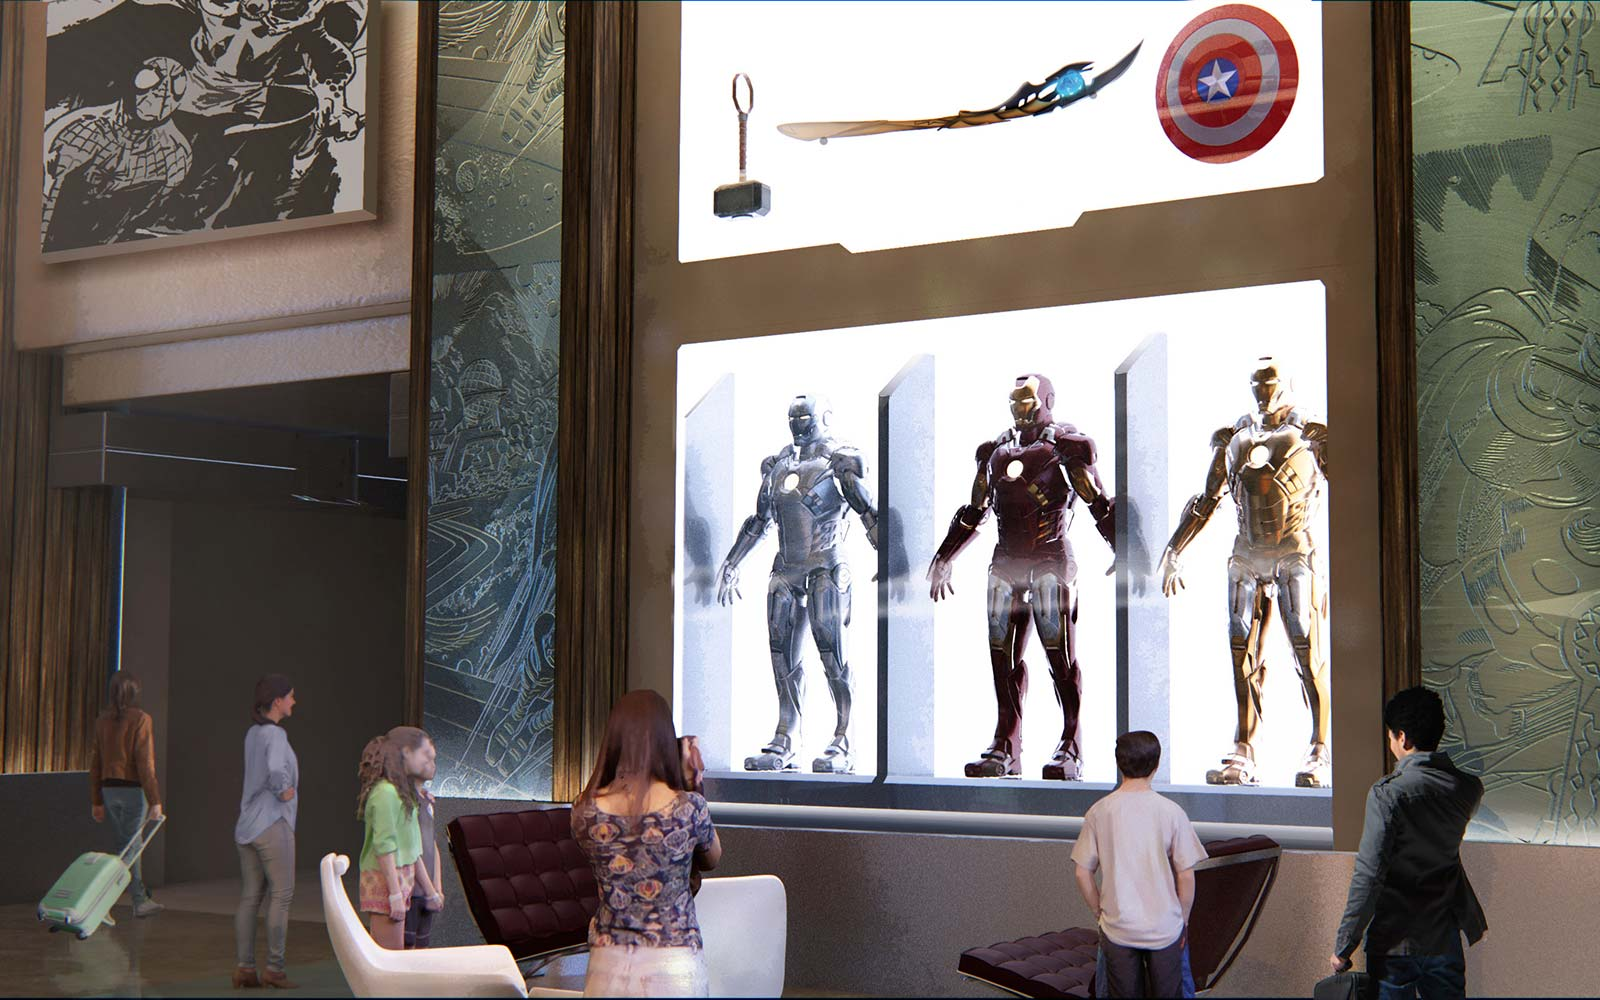 MARVEL-THEMED HOTEL COMING TO DISNEYLAND PARIS -- Disney's Hotel New York – The Art of Marvel at Disneyland Paris will transport guests to the action-packed world of Super Heroes